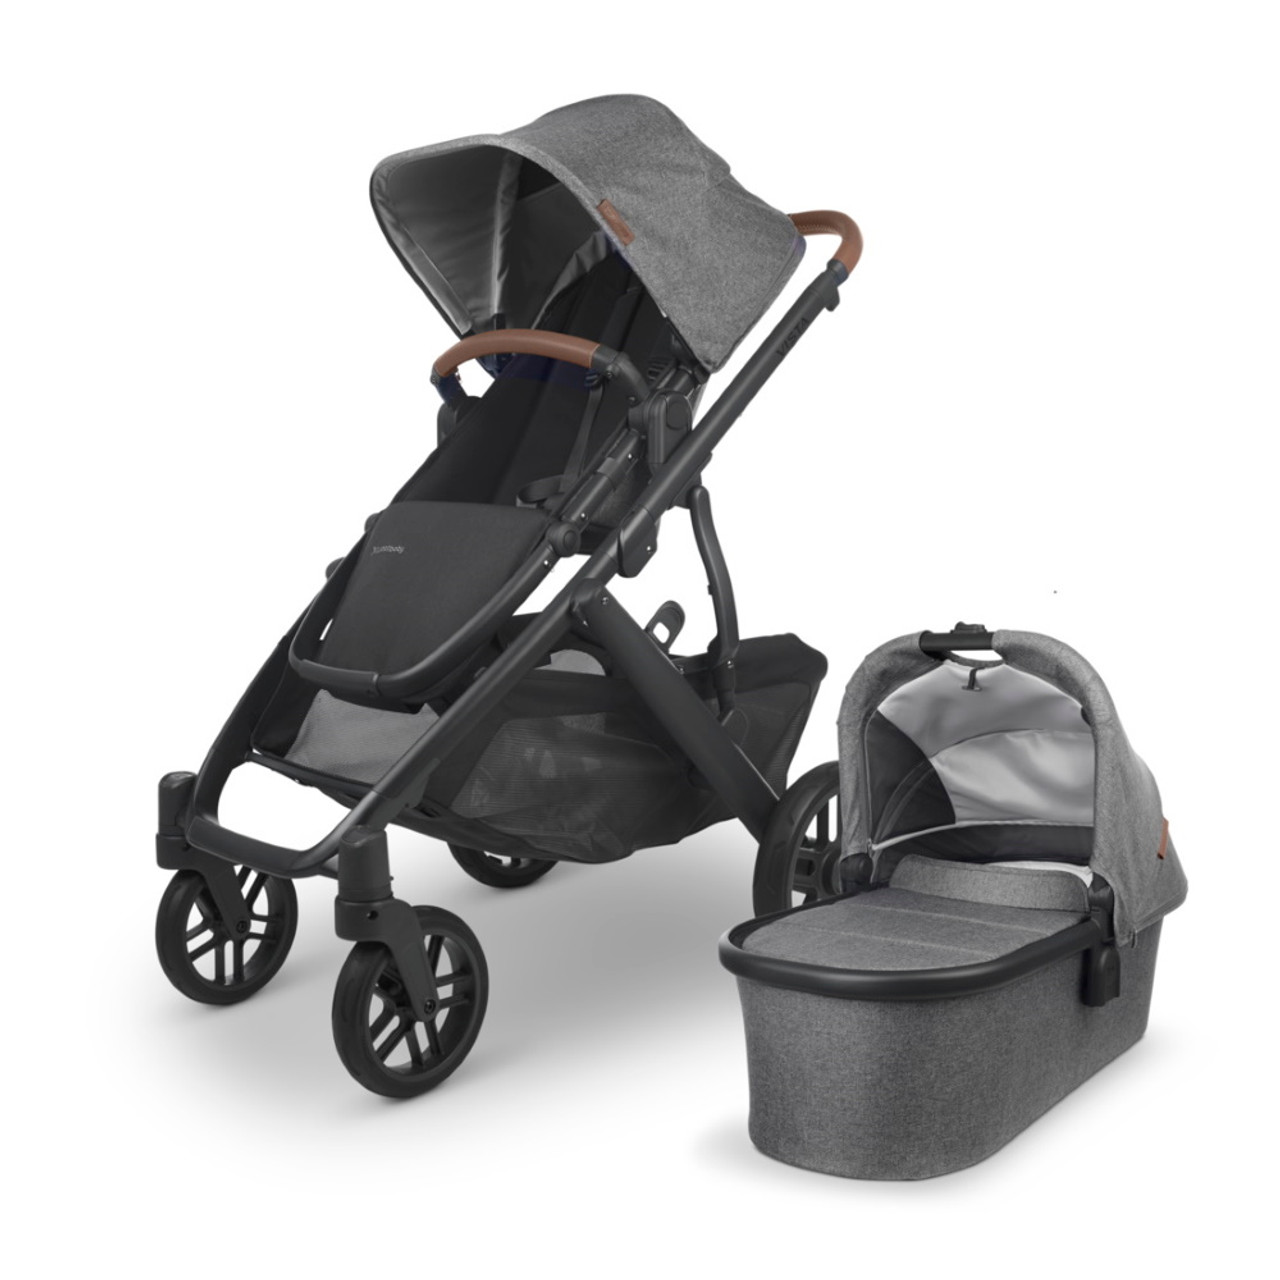 UPPAbaby Vista V2 Pram toddler seat can either ride forwards, backwards, or upright, and reclined